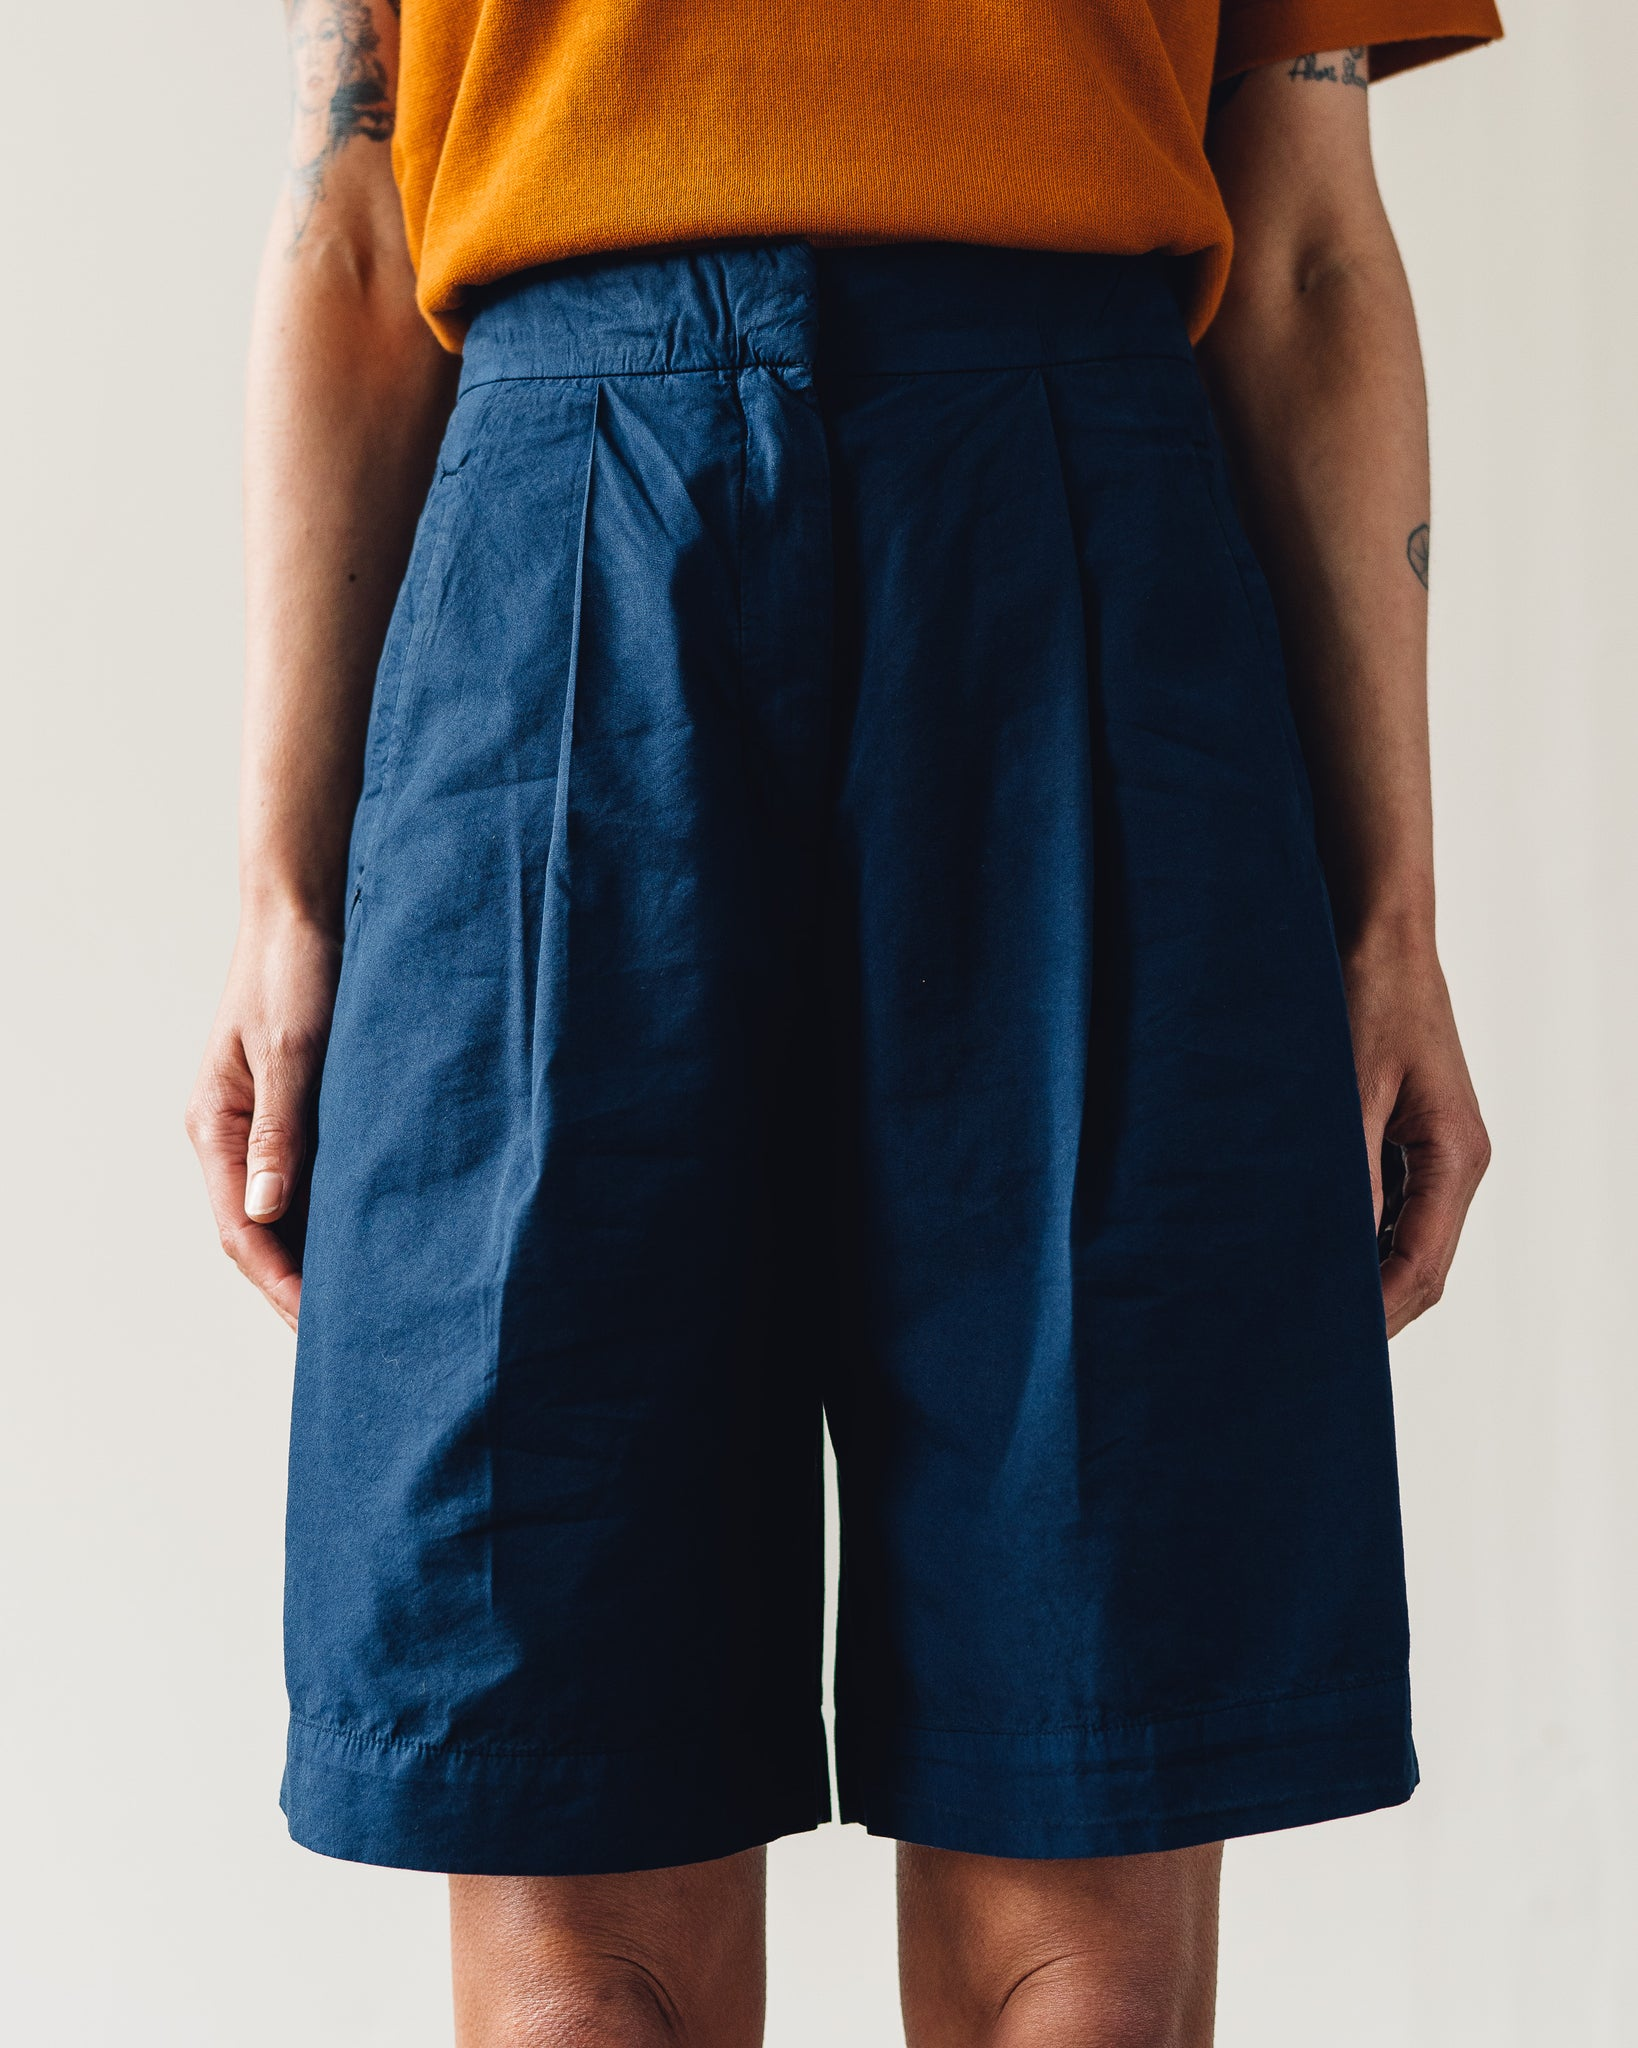 You Must Create City Shorts, Navy